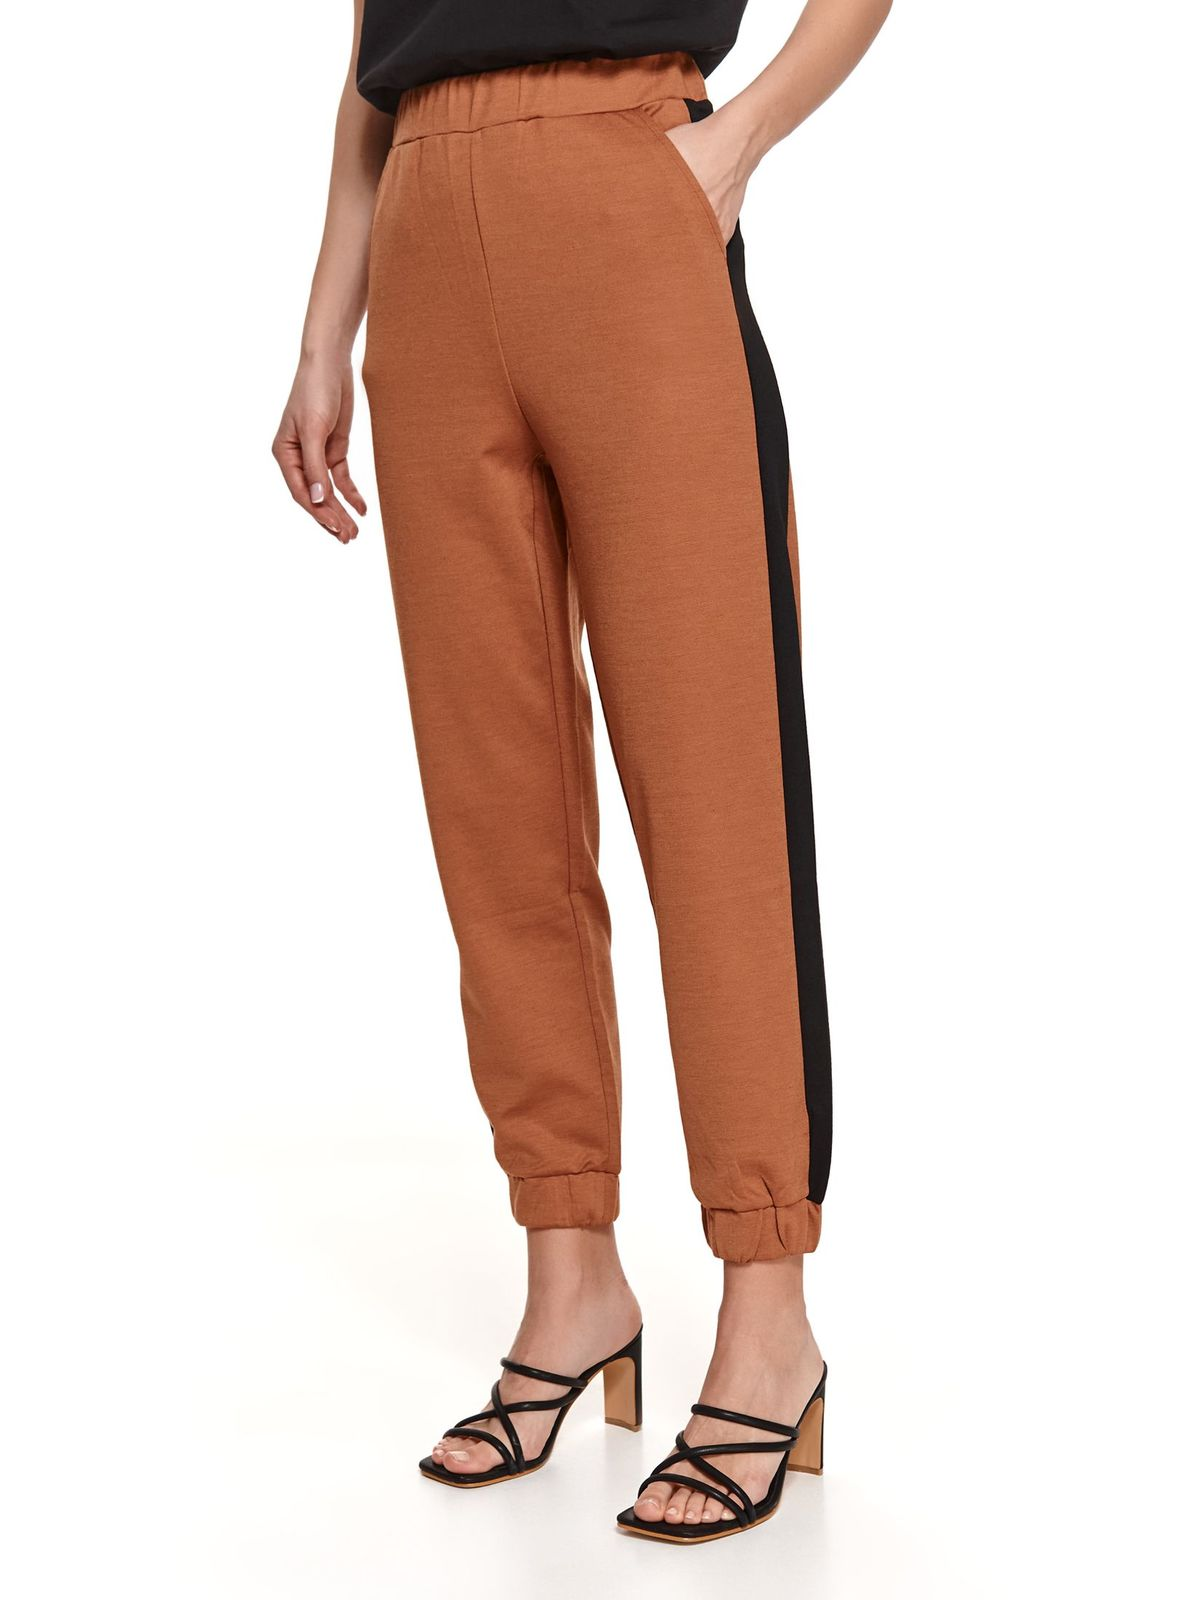 Lightbrown trousers conical with front pockets with vertical stripes